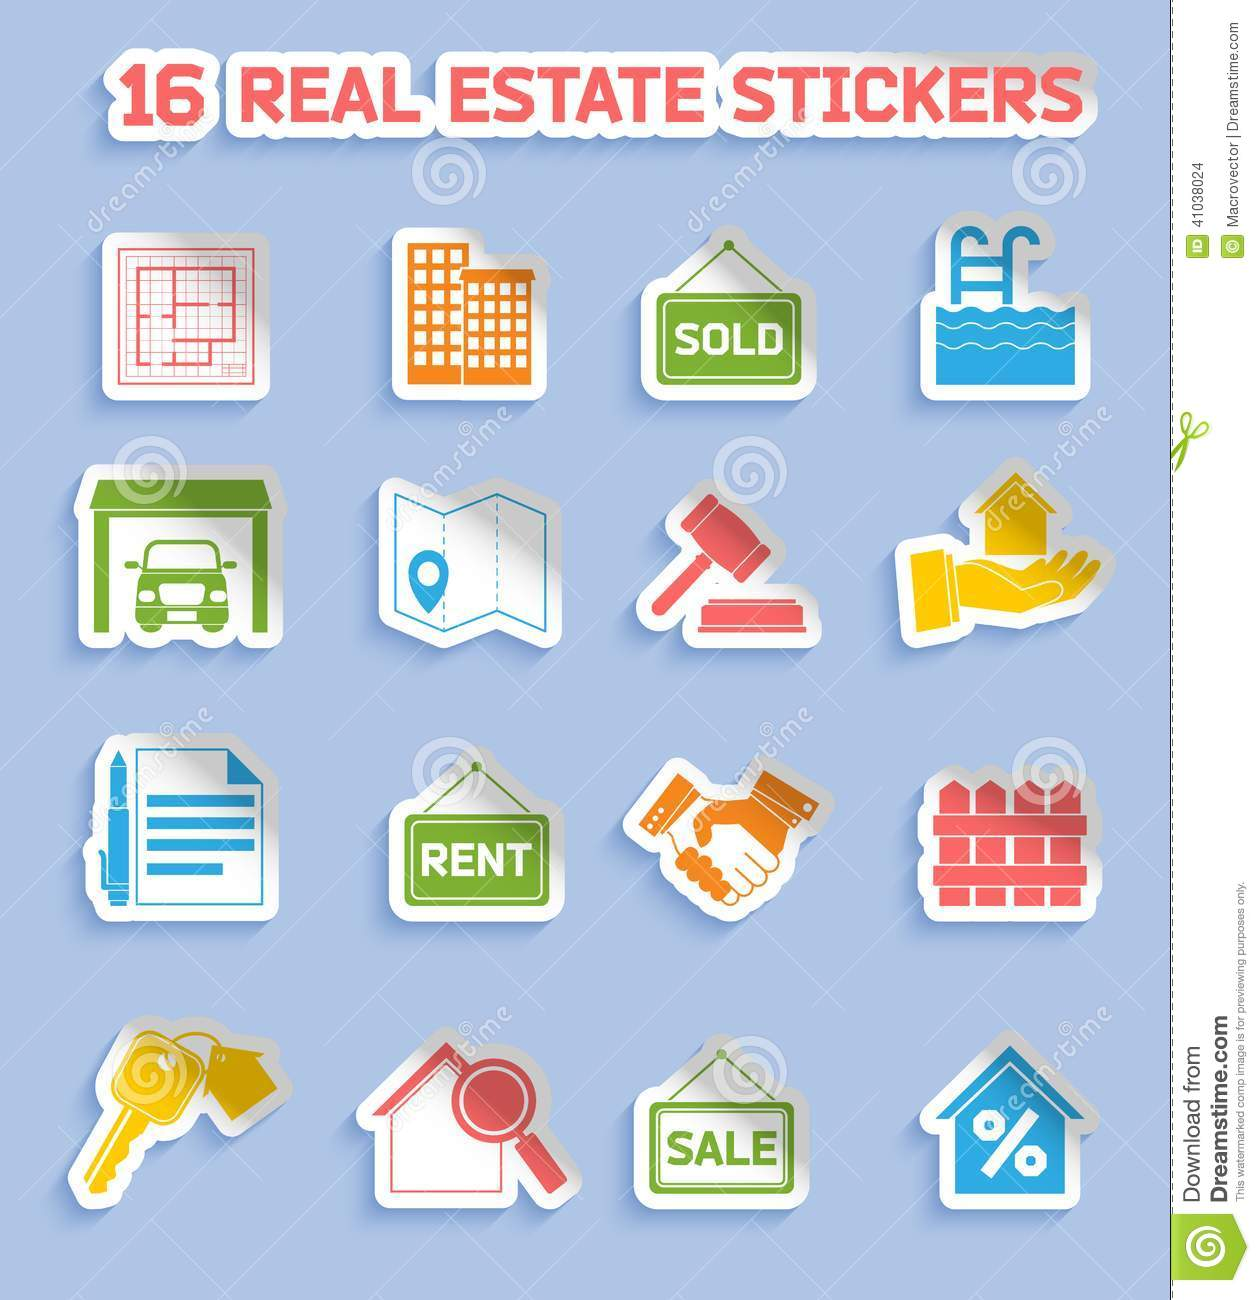 Real estate stickers stock vector  Illustration of pool